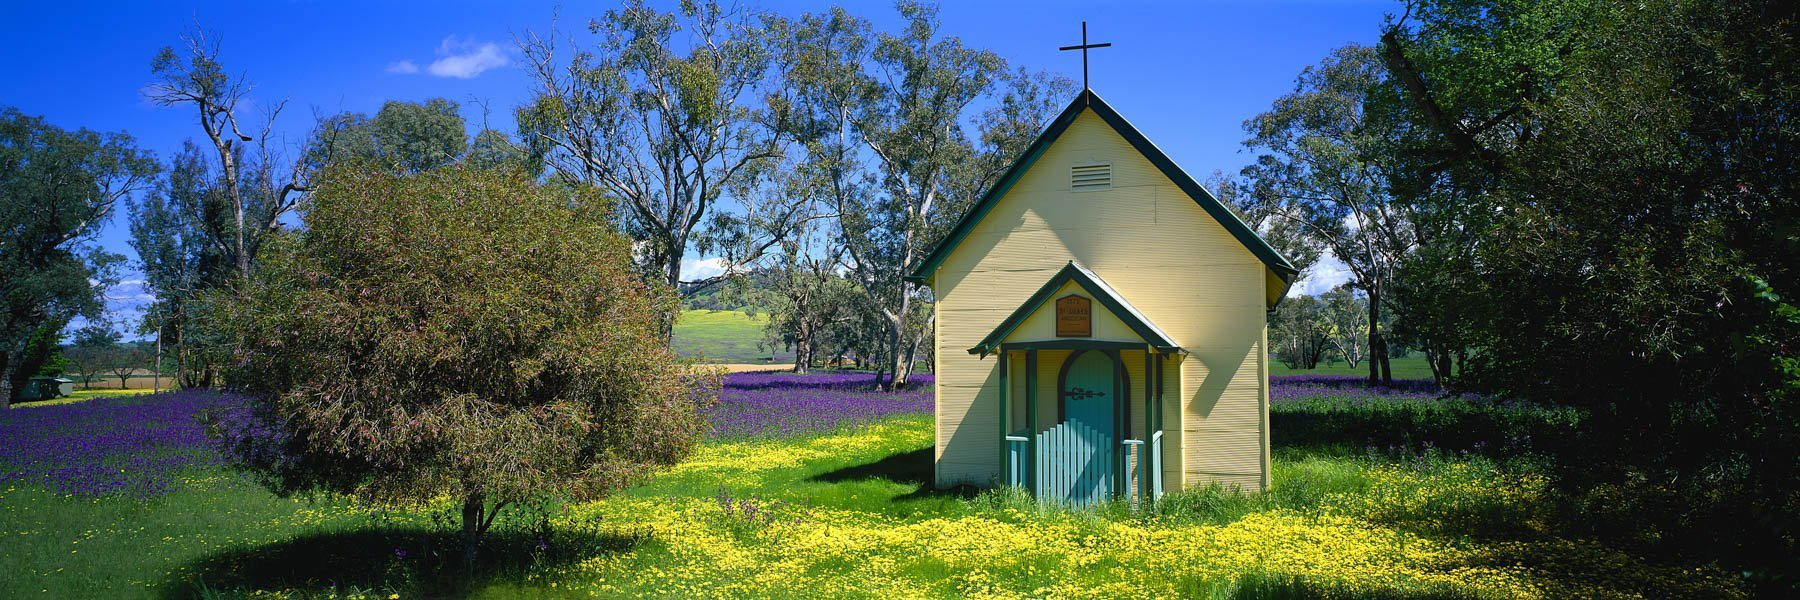 St Luke's Church, Mullengandra, surrounded by a sea of wildflowers.